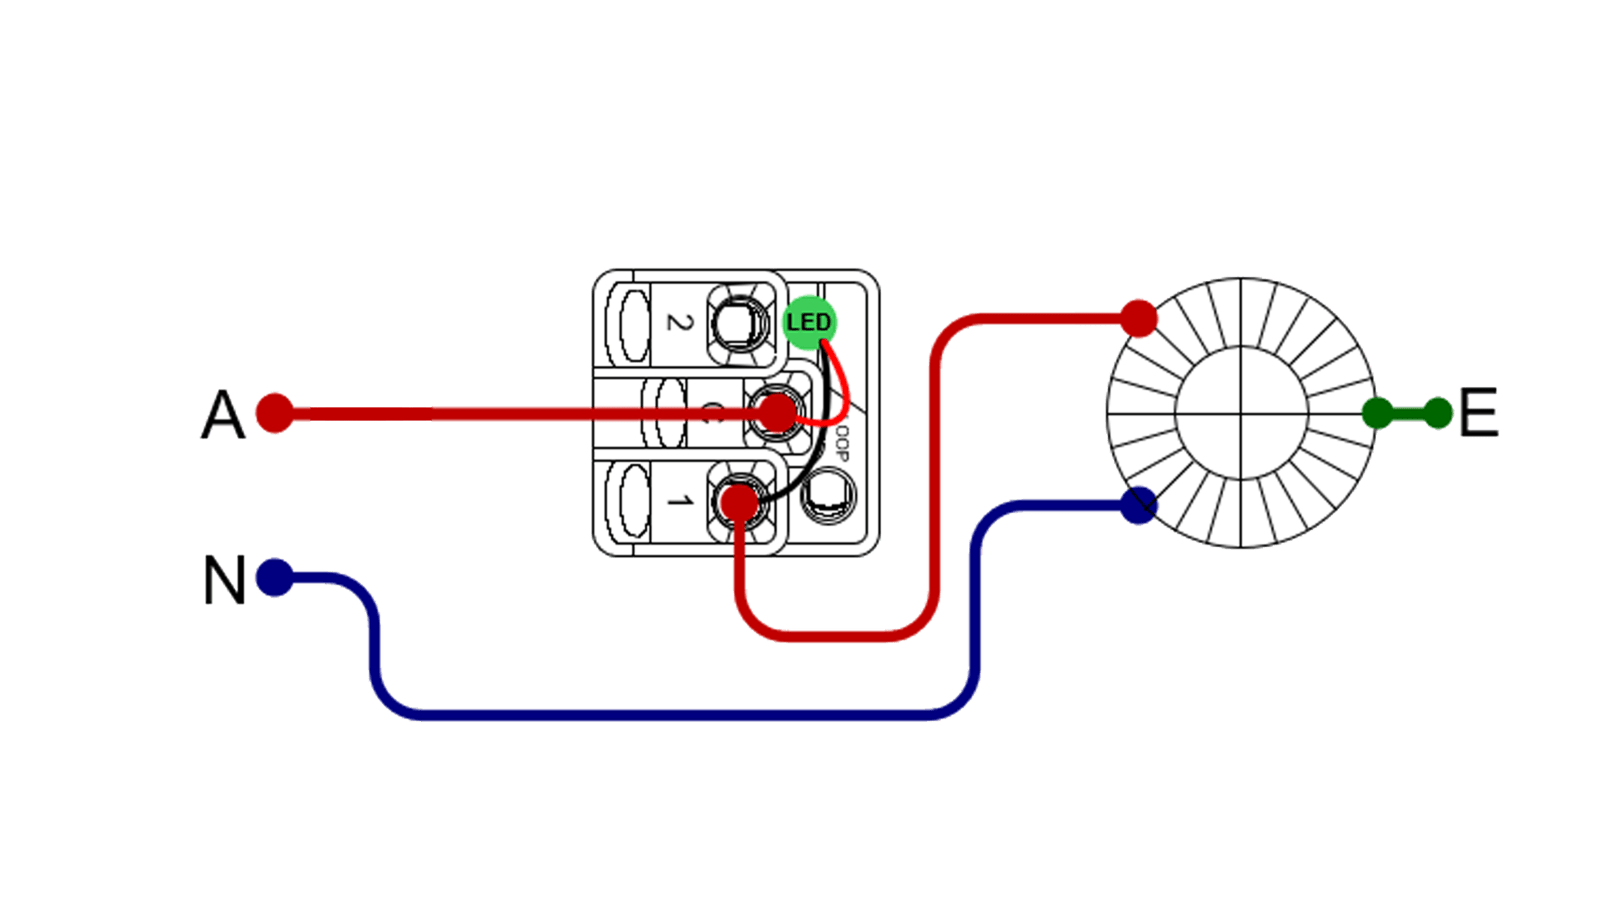 Clipsal Dimmer Wiring Diagram